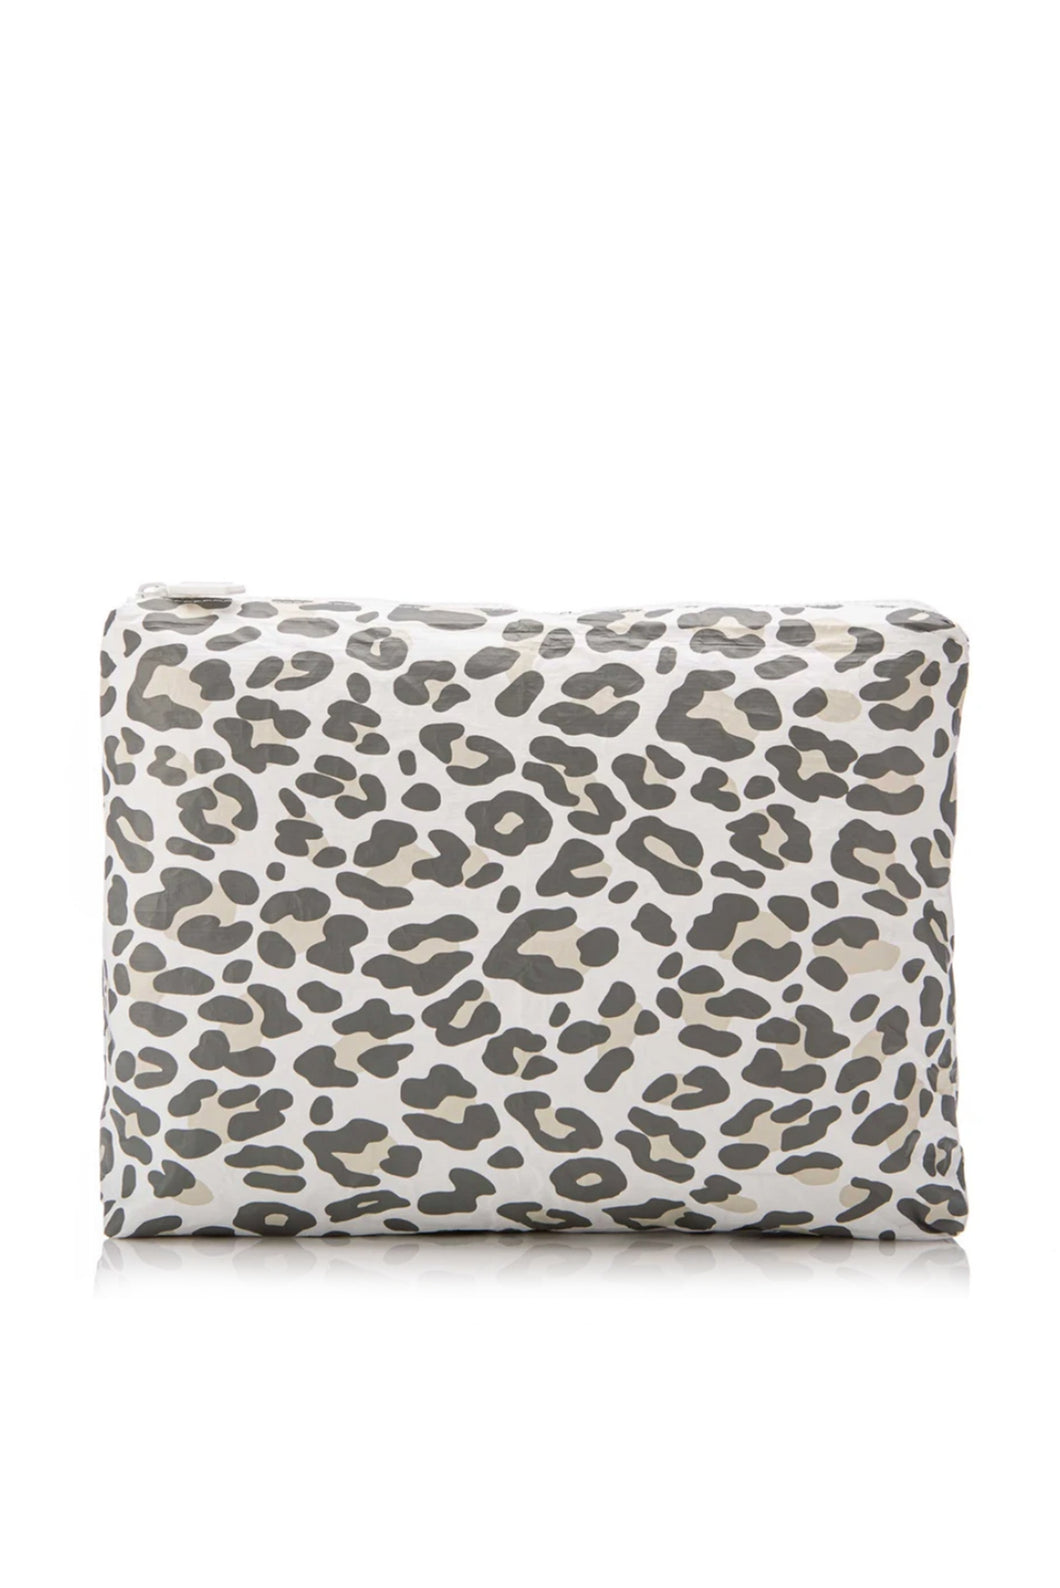 Snow Leopard Splash Proof Medium Pouch